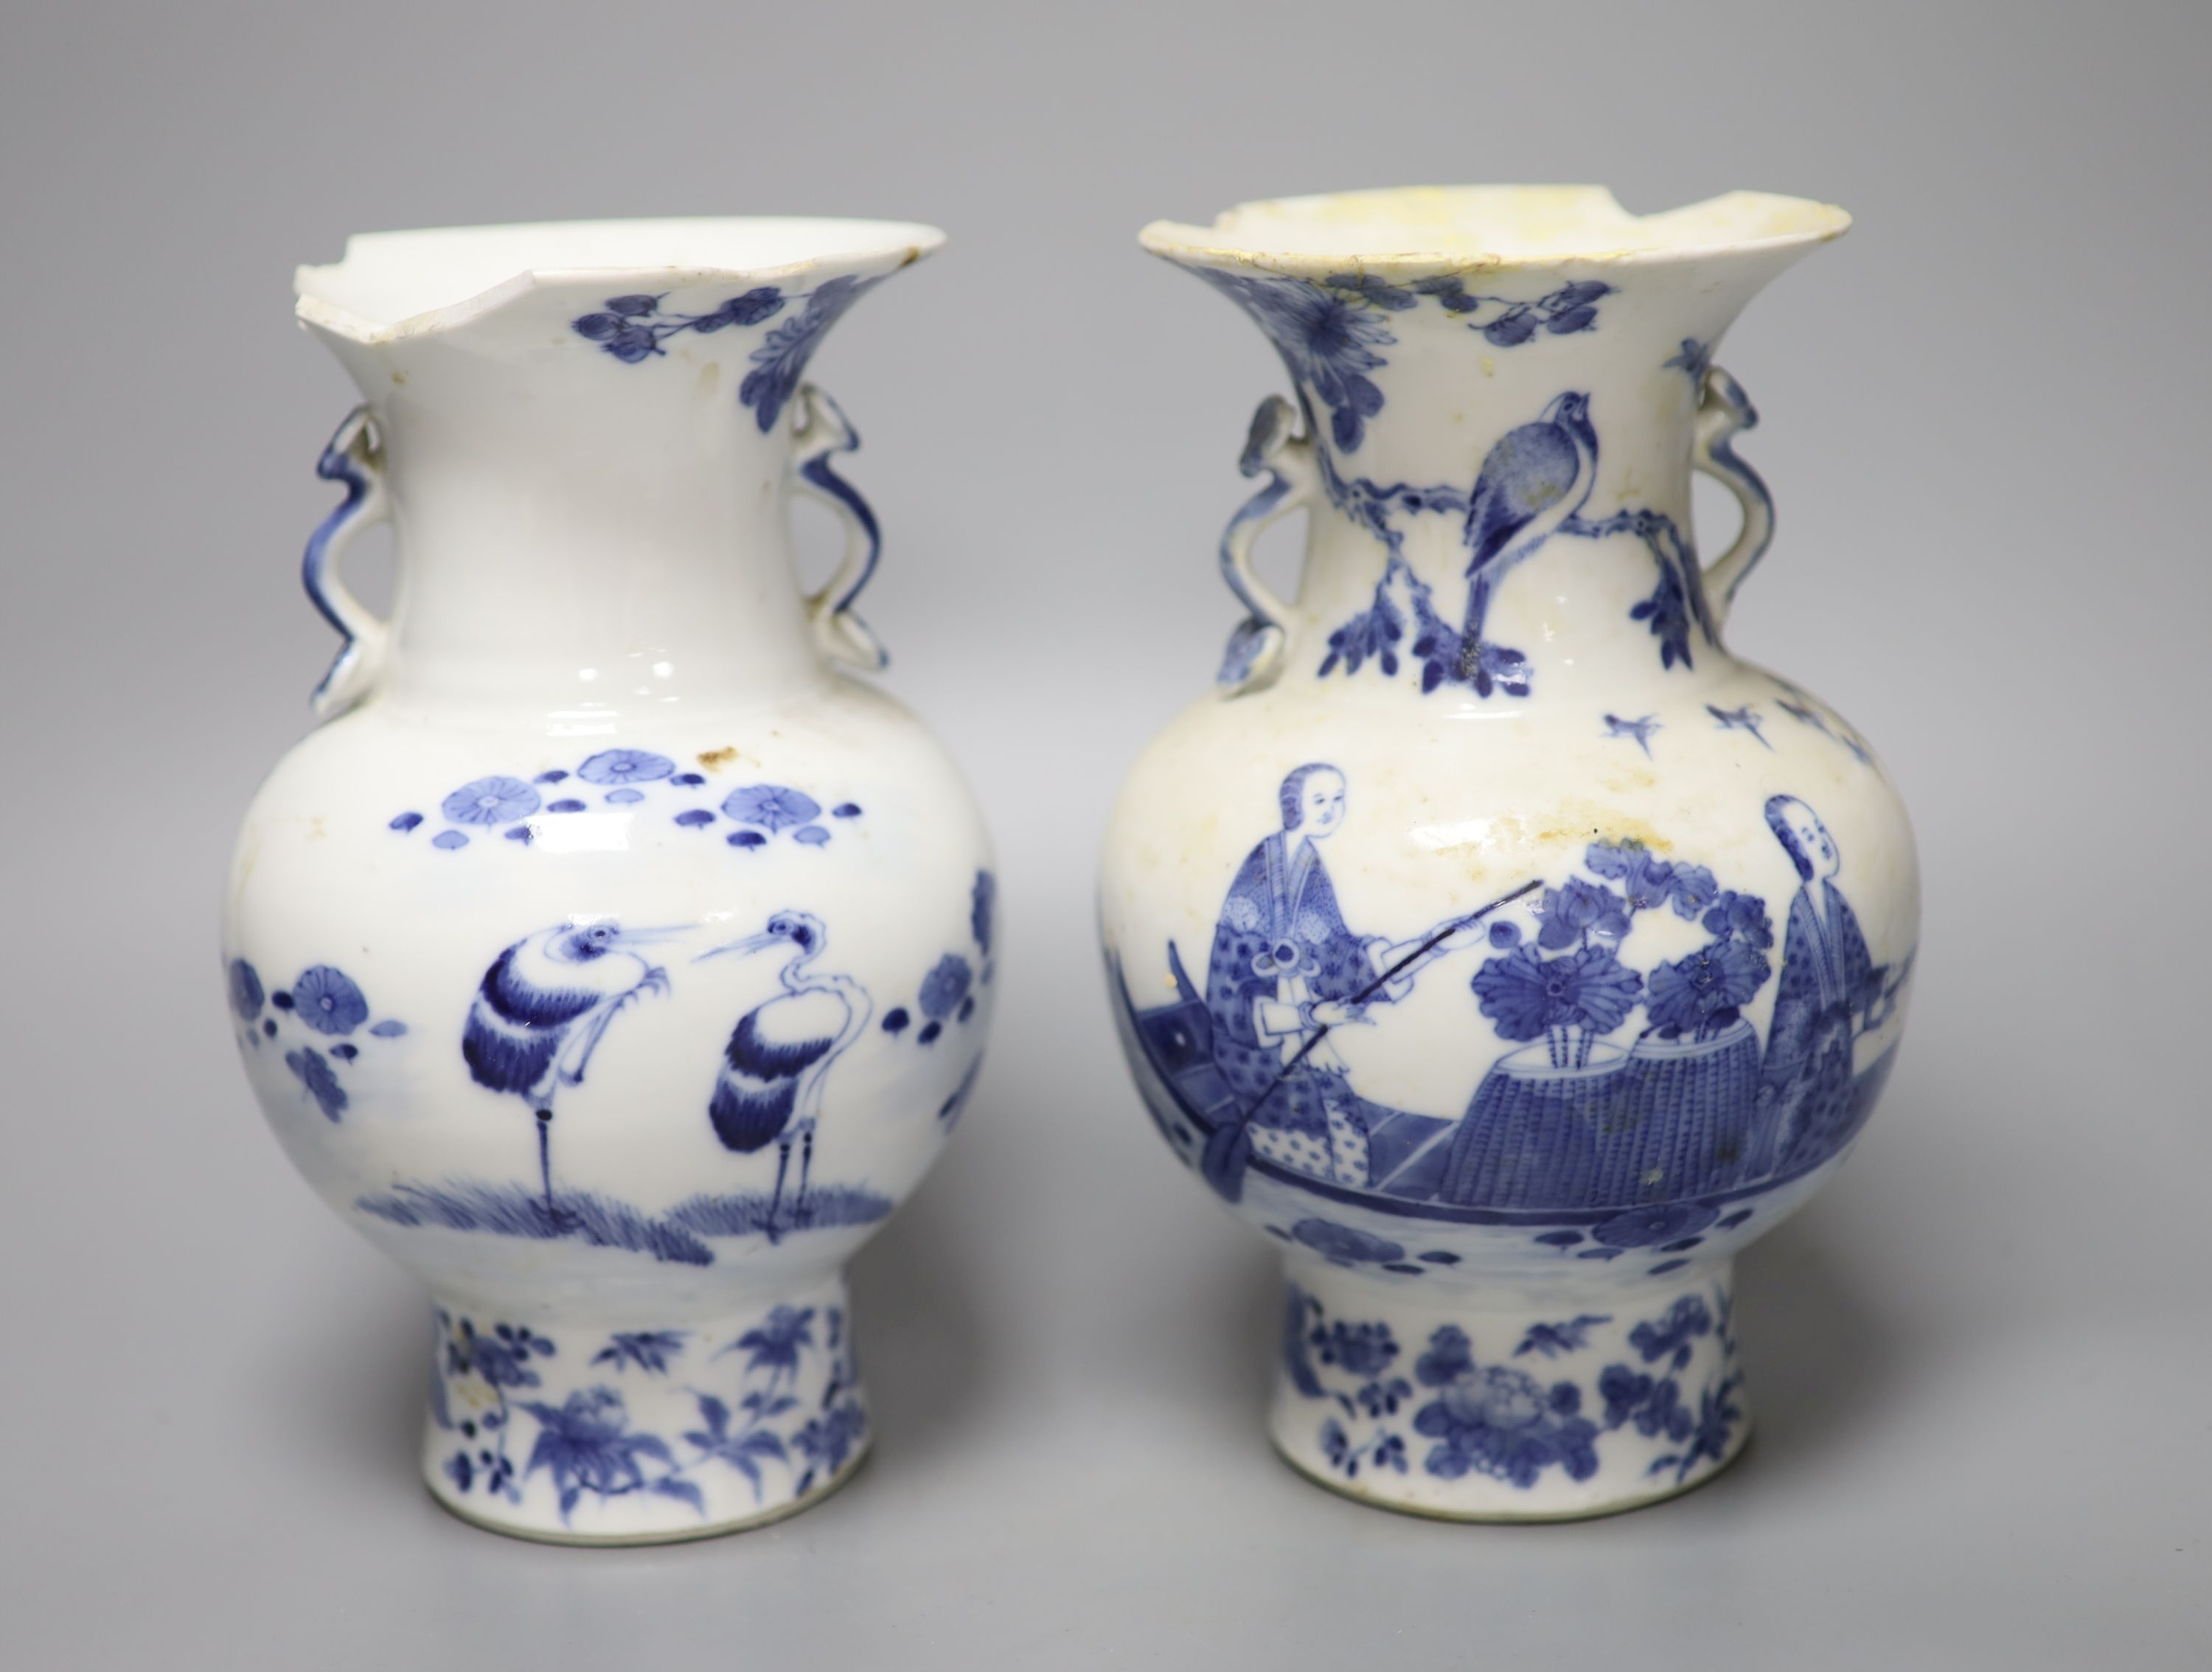 A pair of 19th century Chinese blue and white vases (a.f.), 23cm high